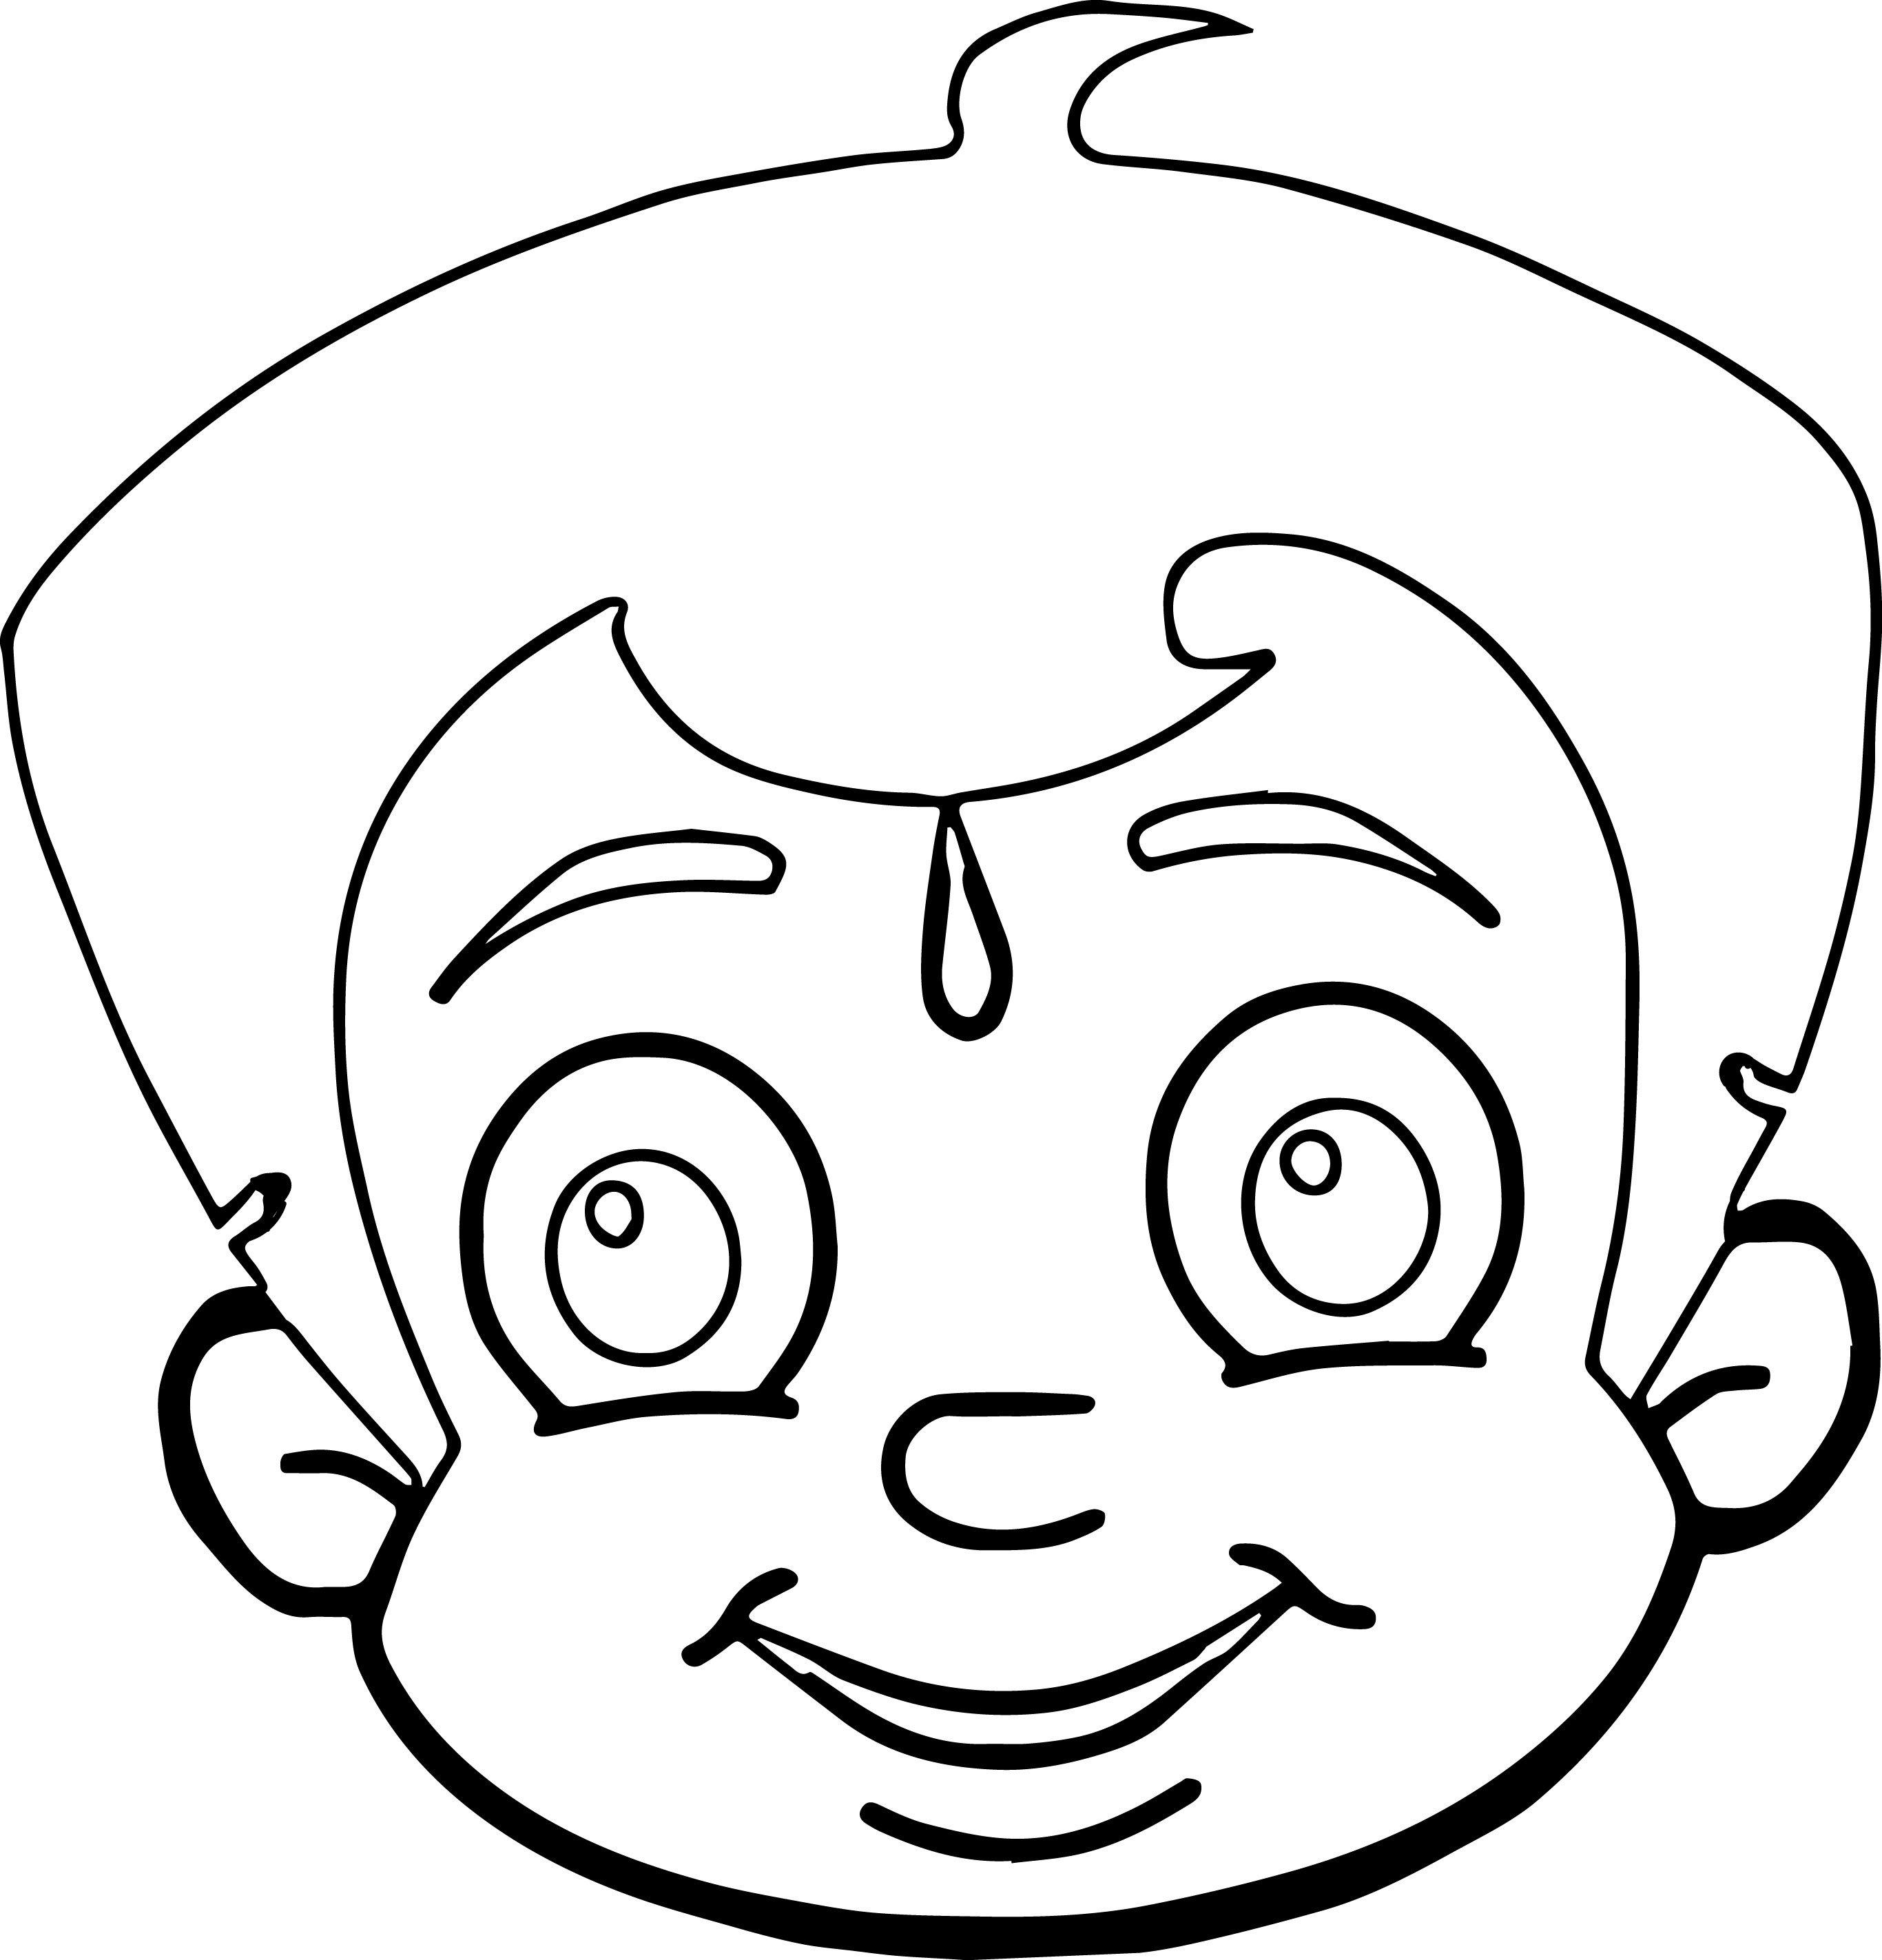 Chhota Bheem Coloring Page 36 One Face Coloring Page